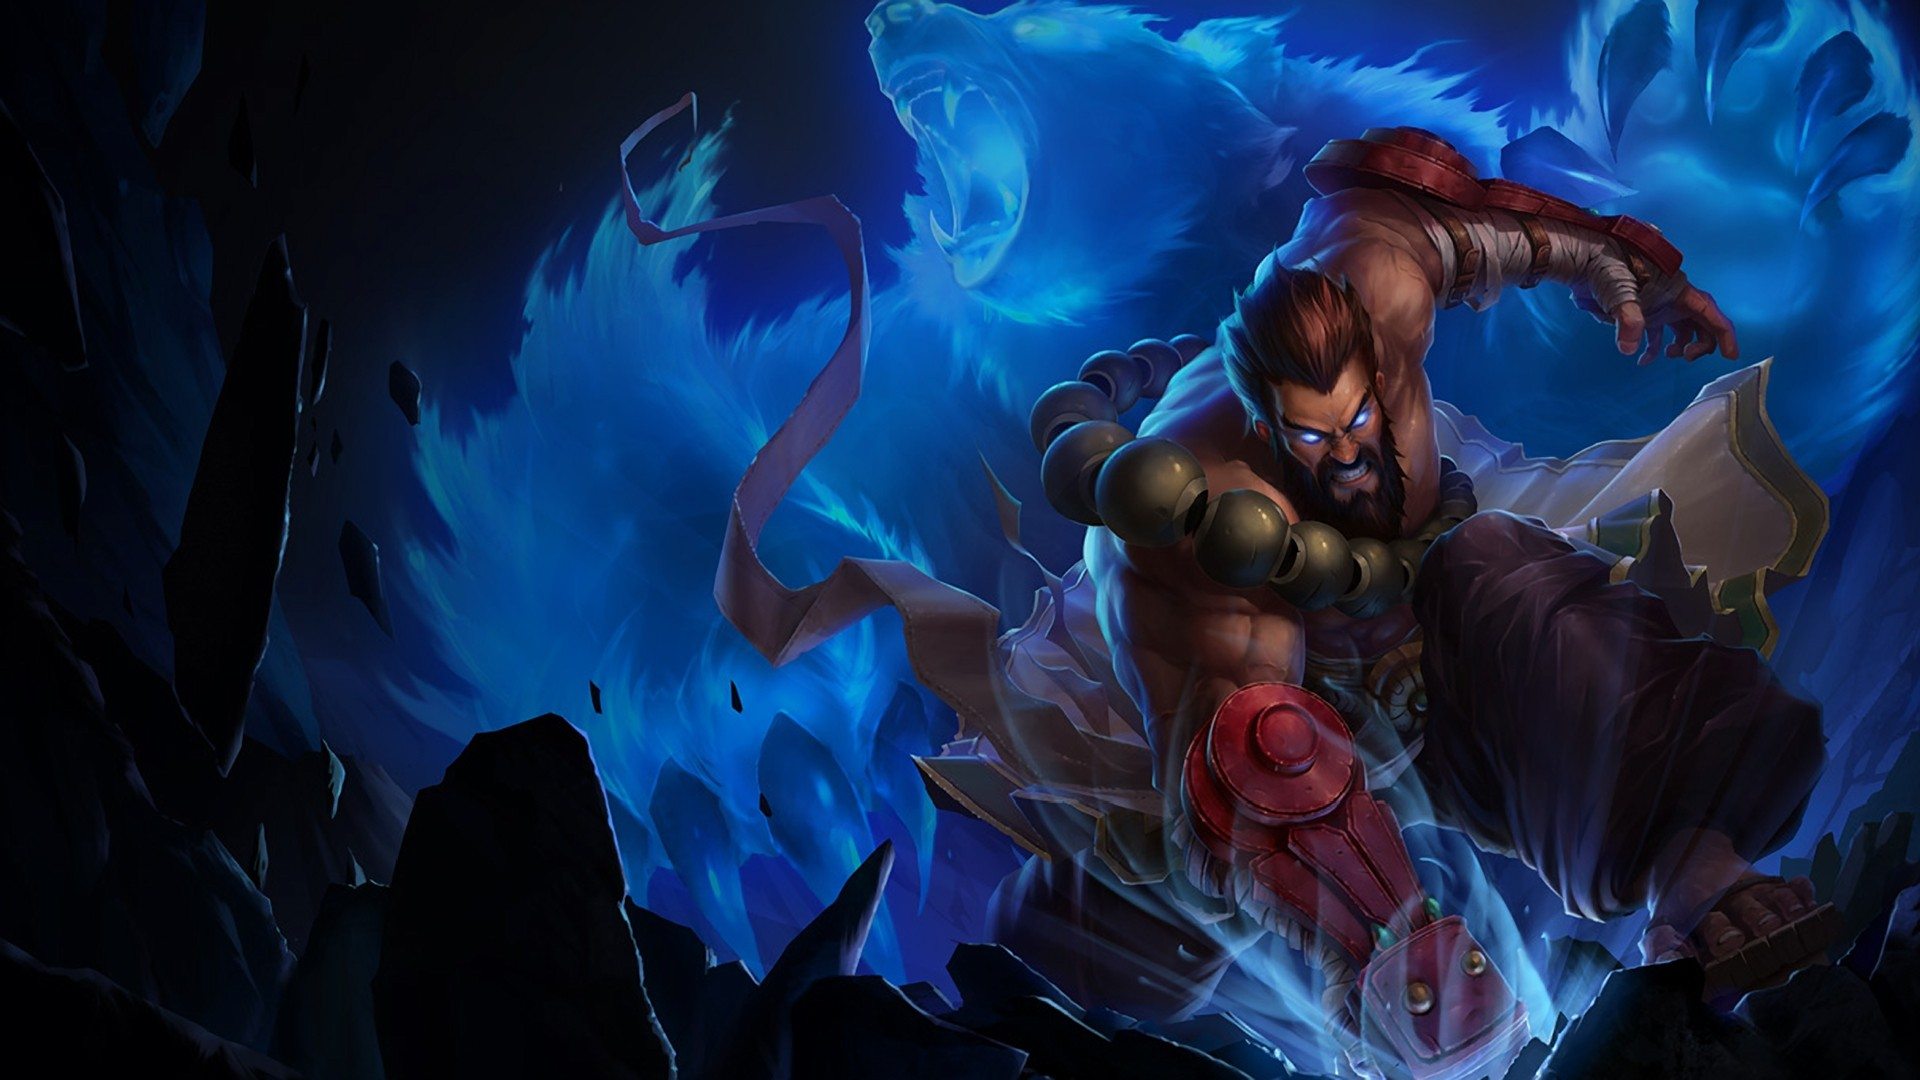 Wallpaper Untuk Legends Mobile Hd 4k For Android: Udyr League Of Legends, HD Games, 4k Wallpapers, Images